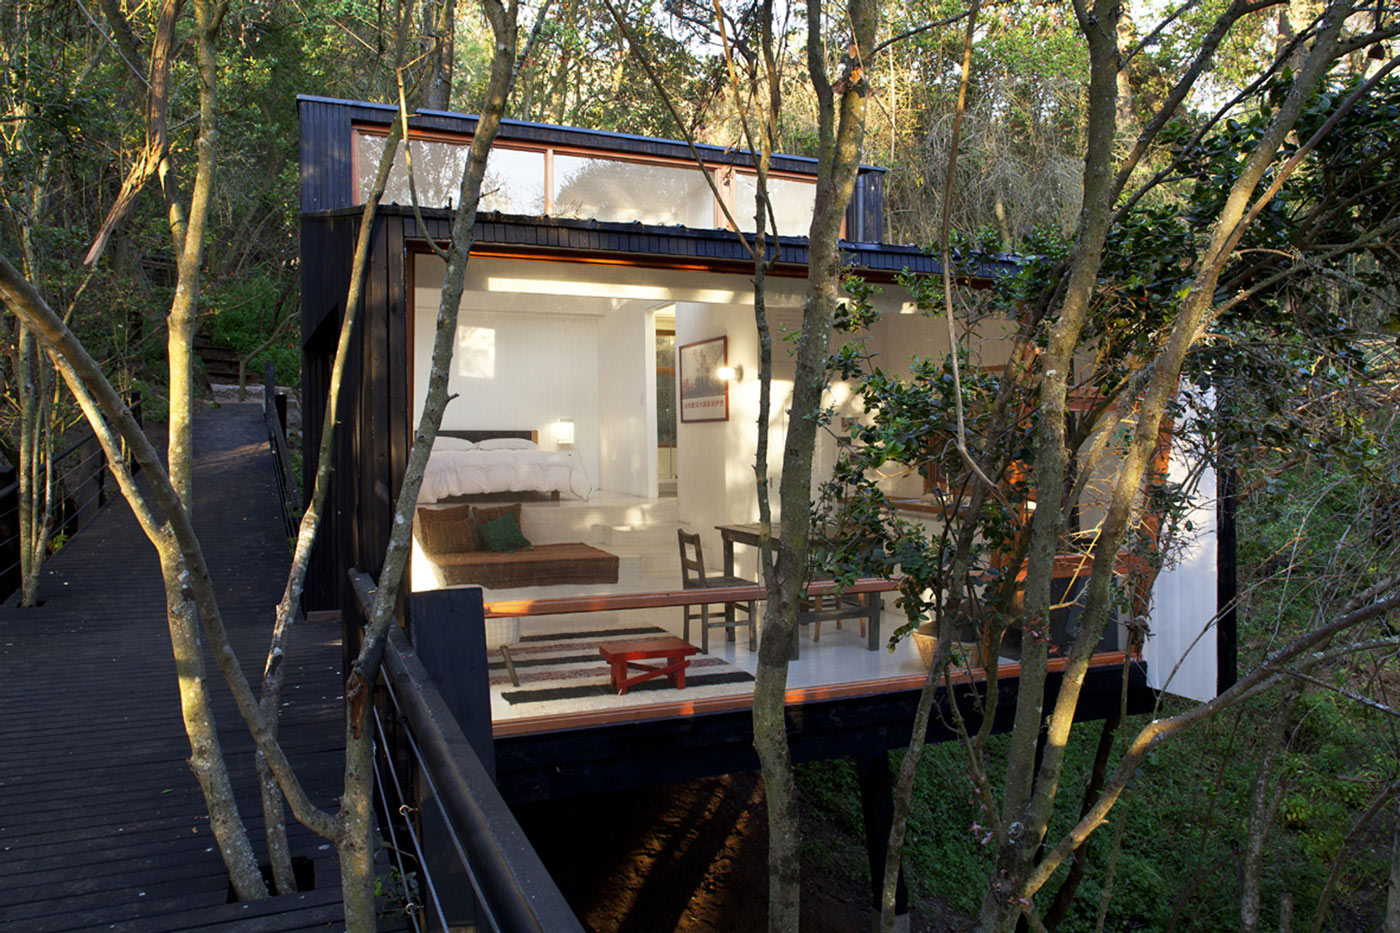 Glass Wall, Bridge, Tree House in Curacaví, Chile